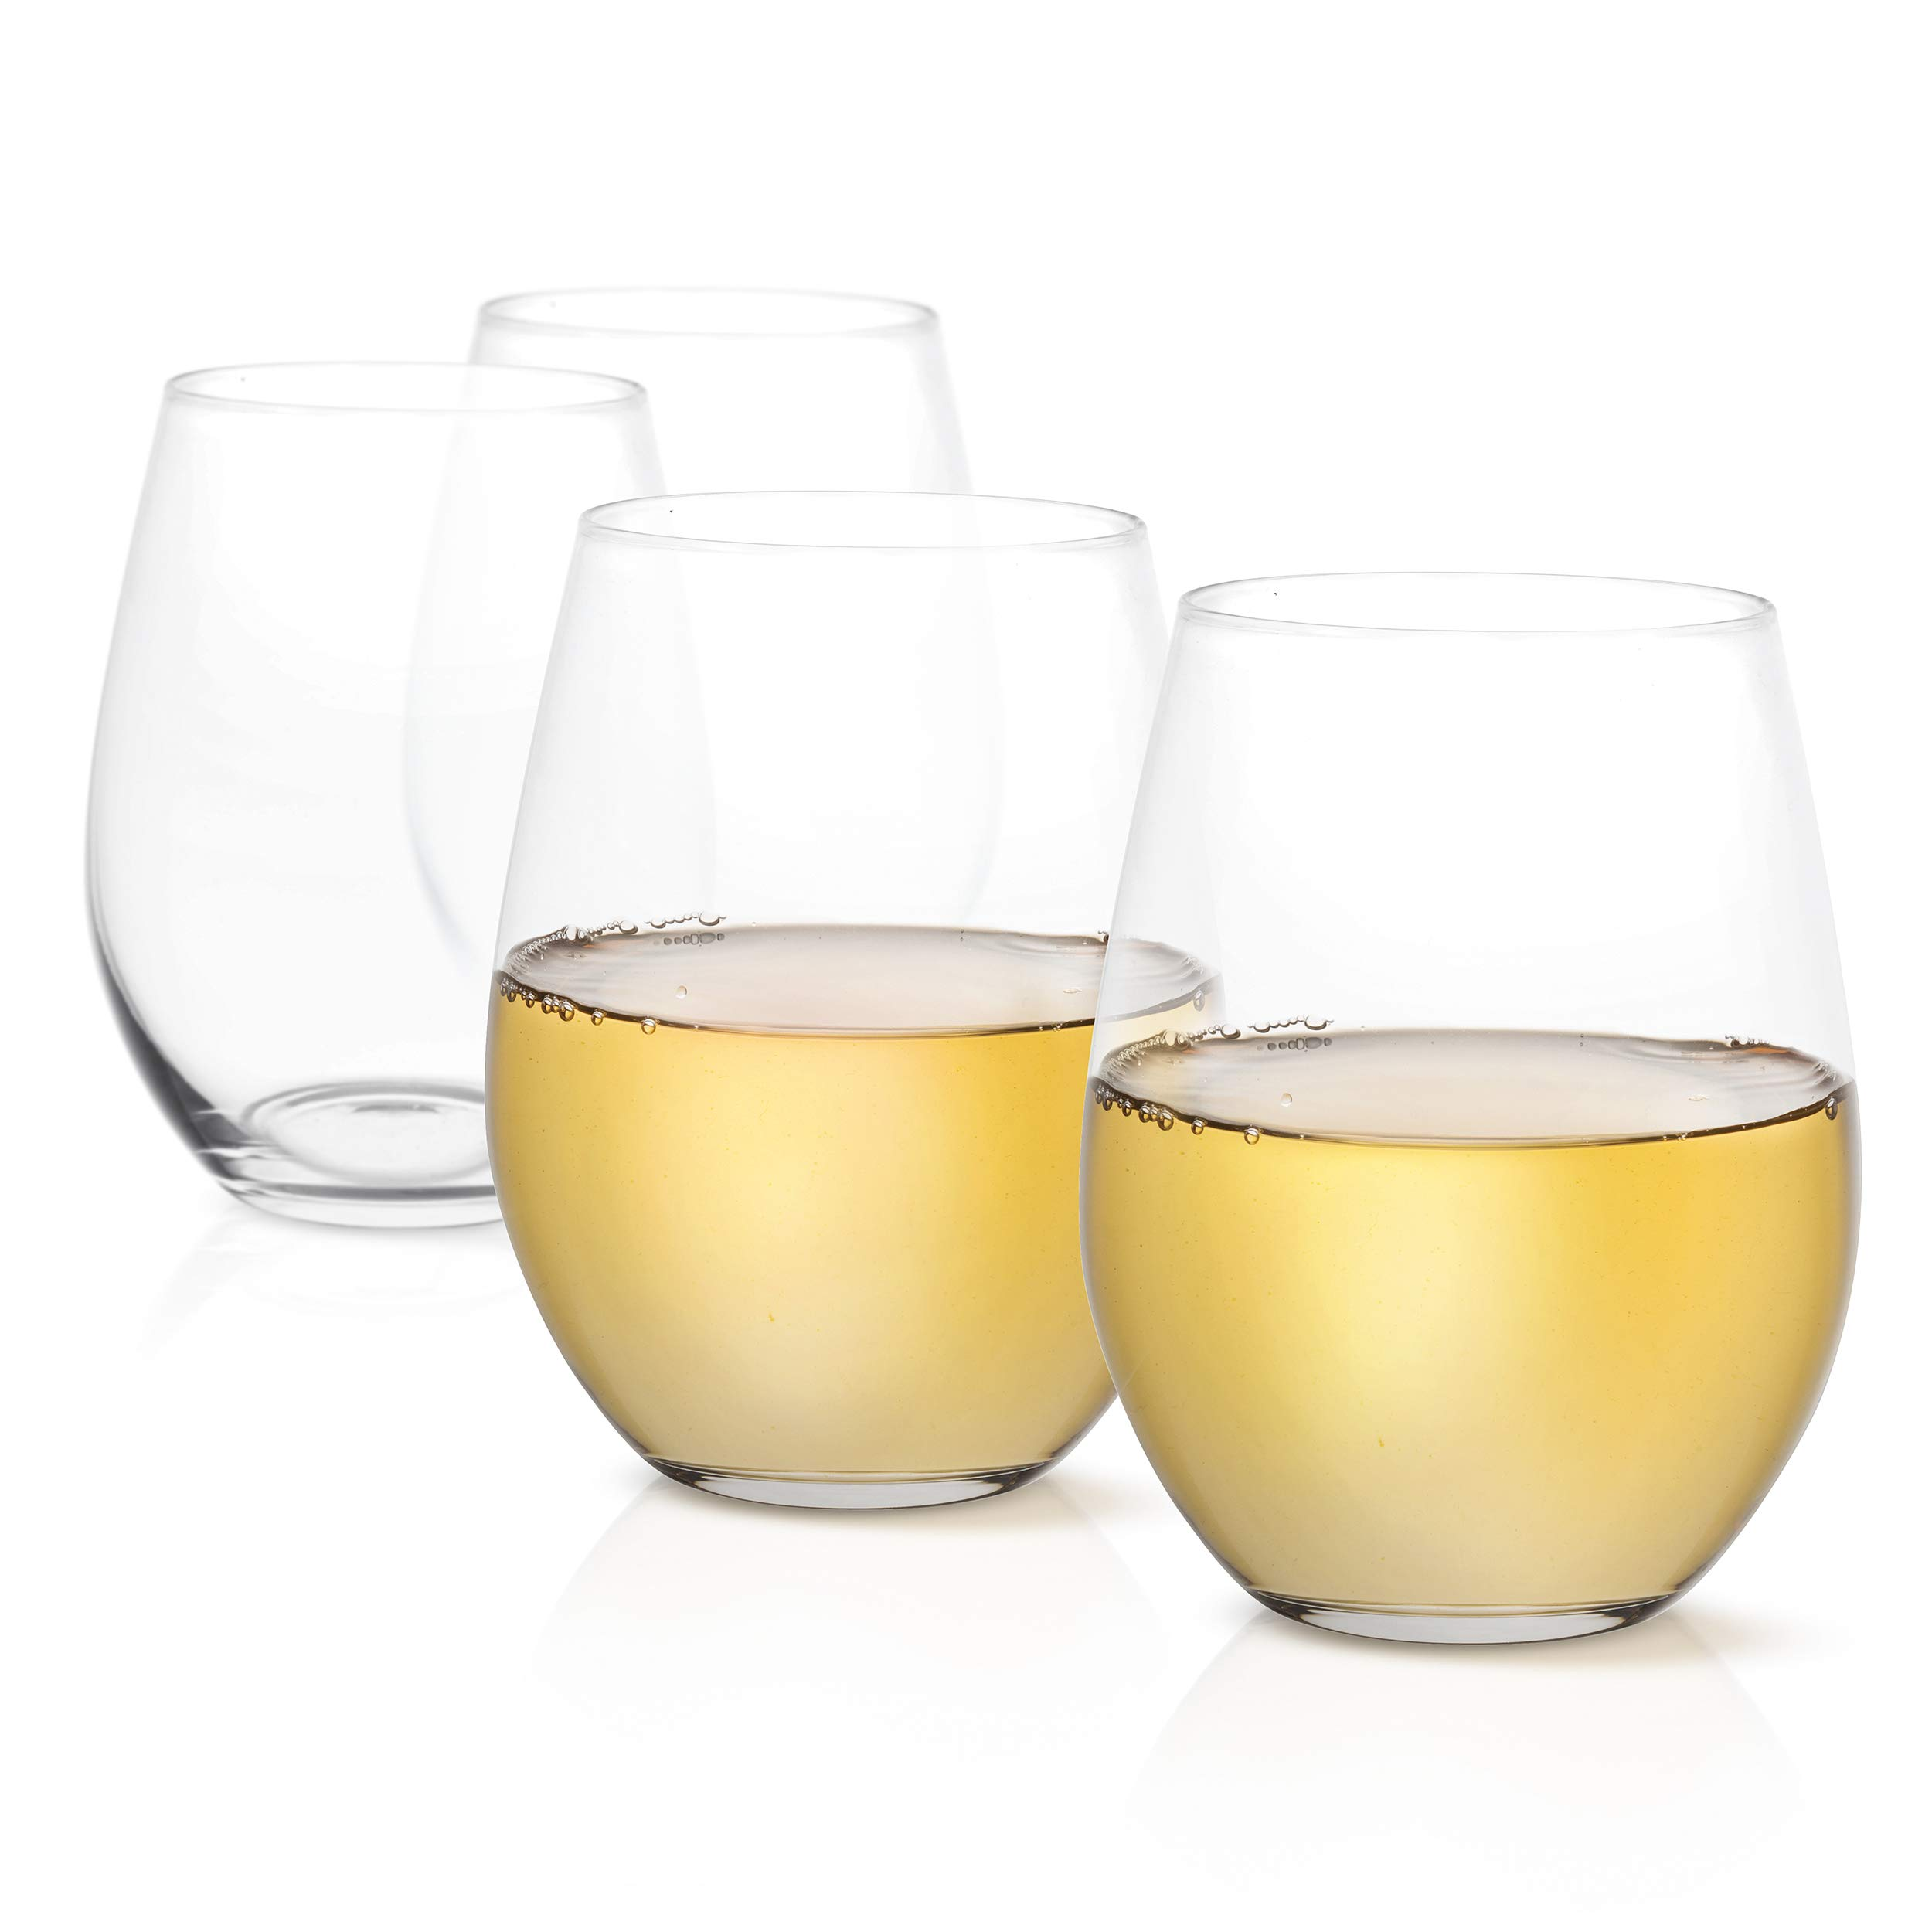 JoyJolt Spirits Stemless Wine Glasses for Red or White Wine (Set of 4)-19-Ounces by JoyJolt (Image #6)